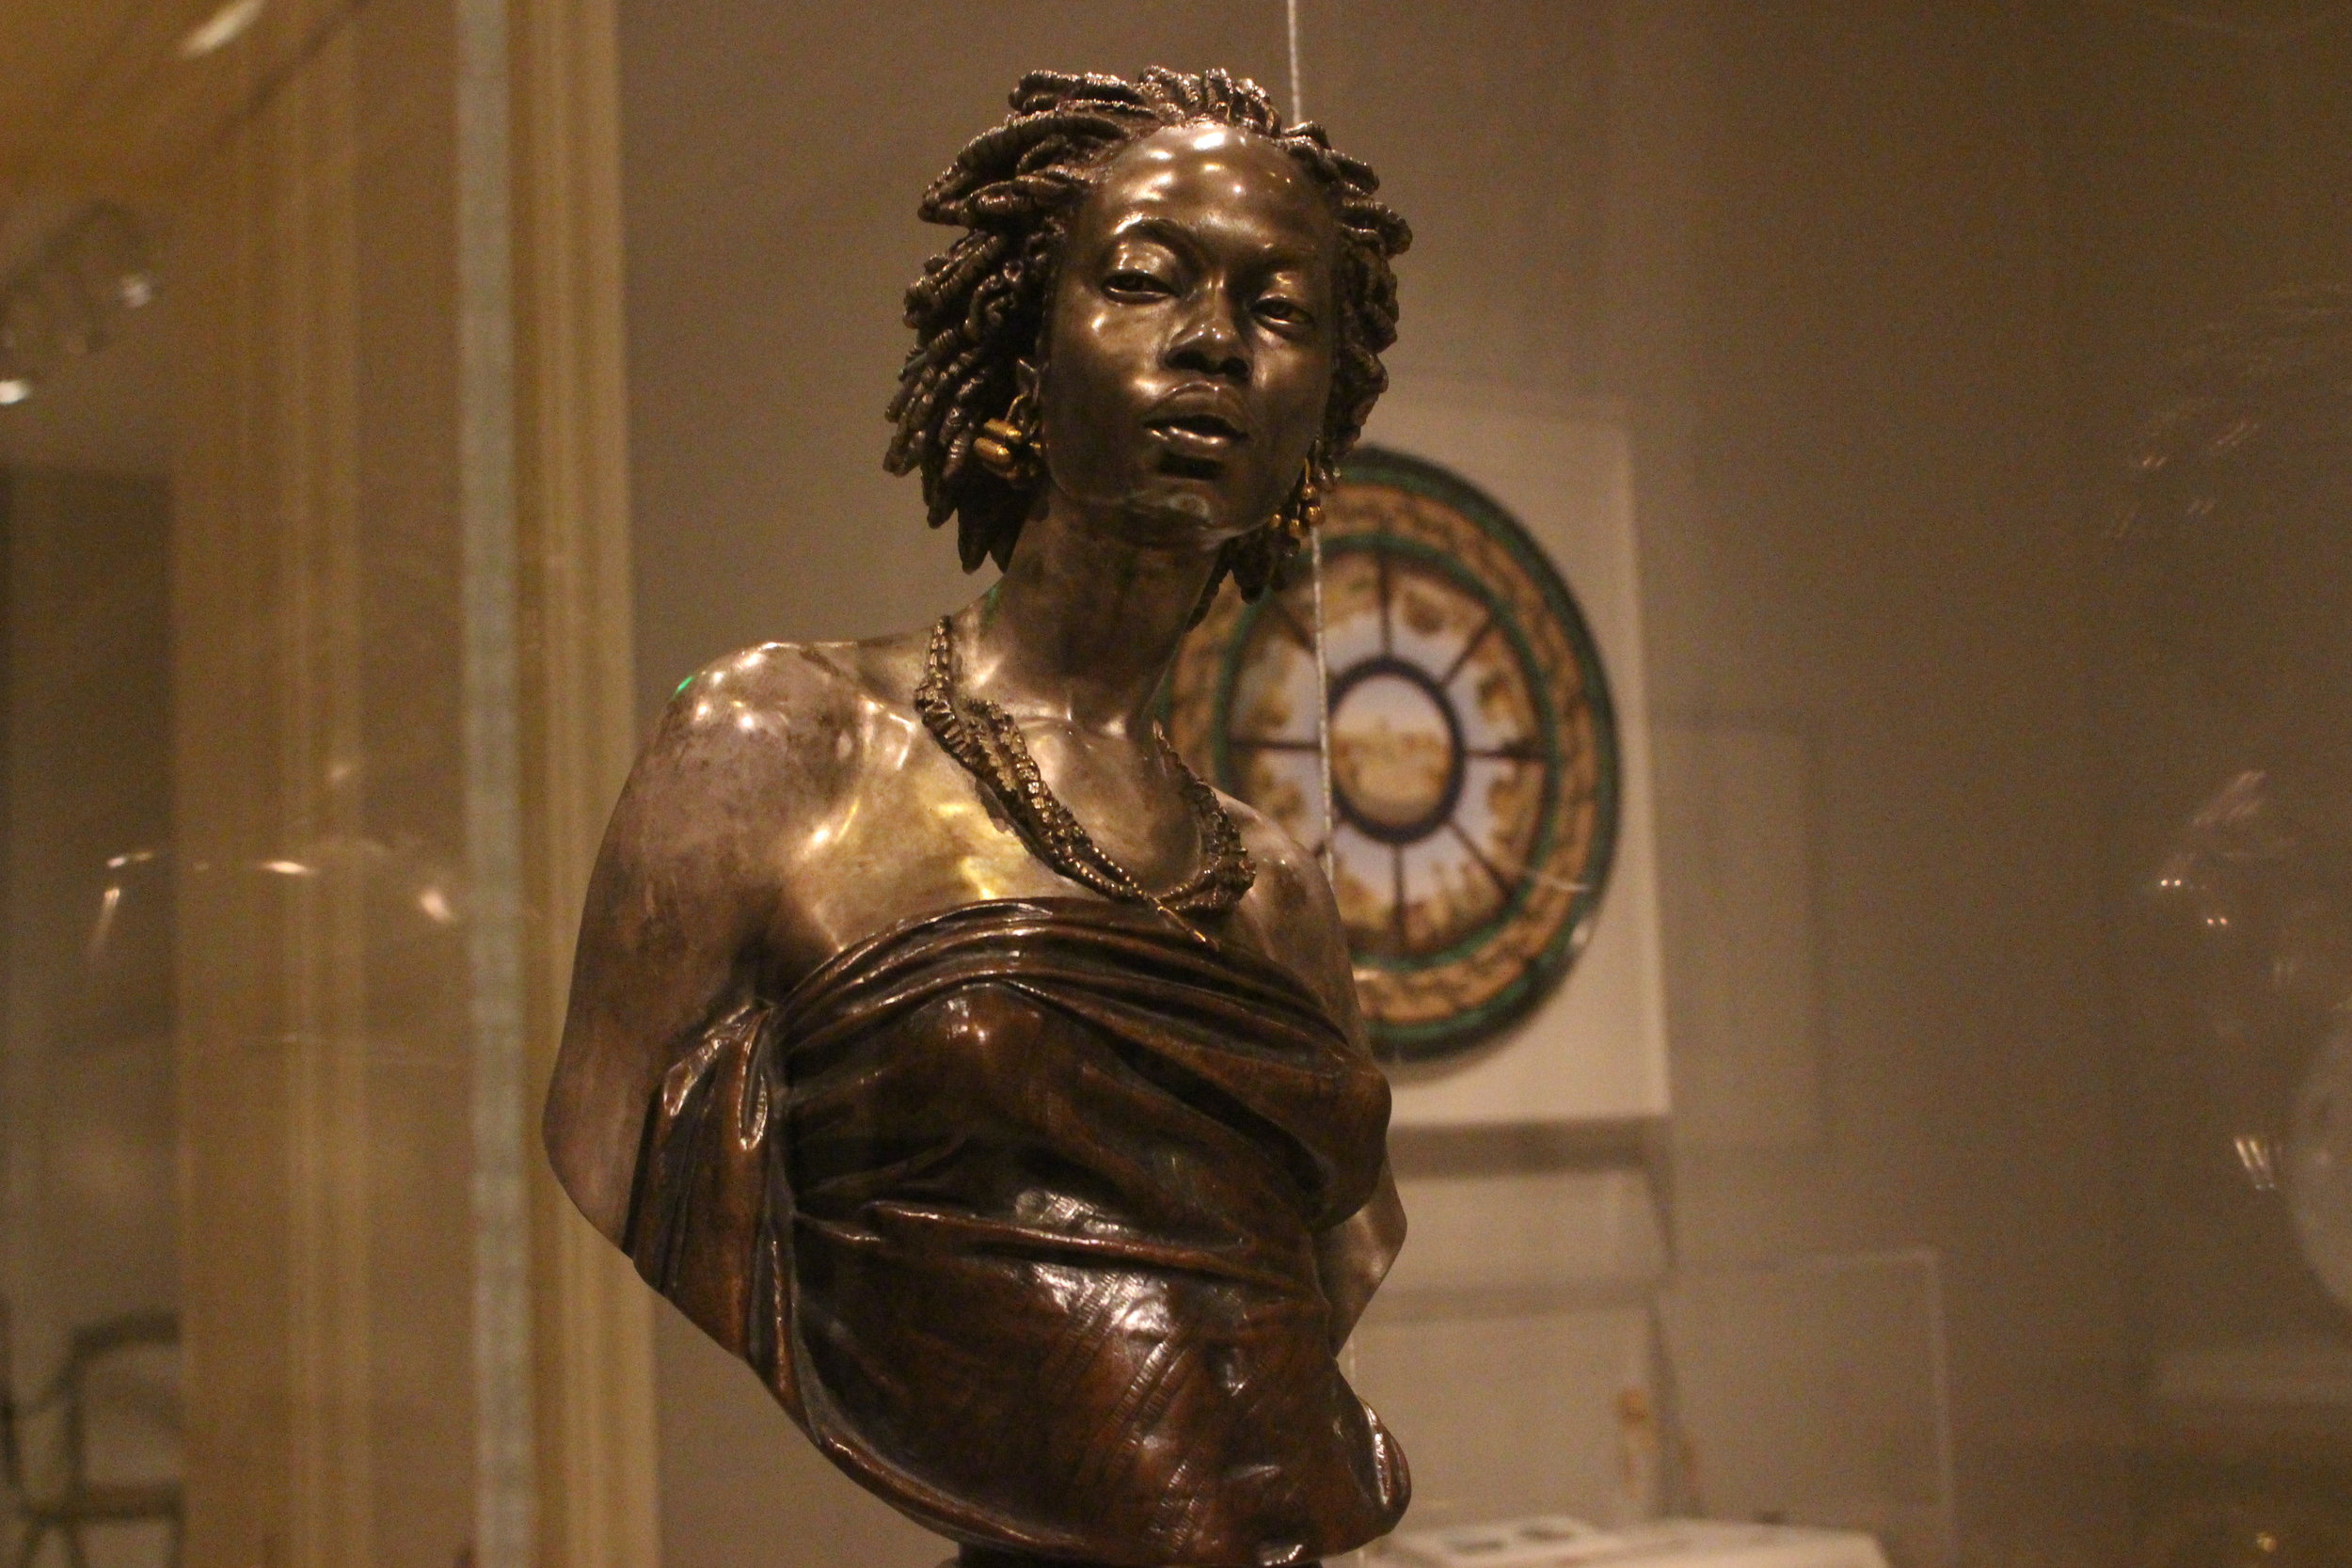 The bust of an African woman made of bronze